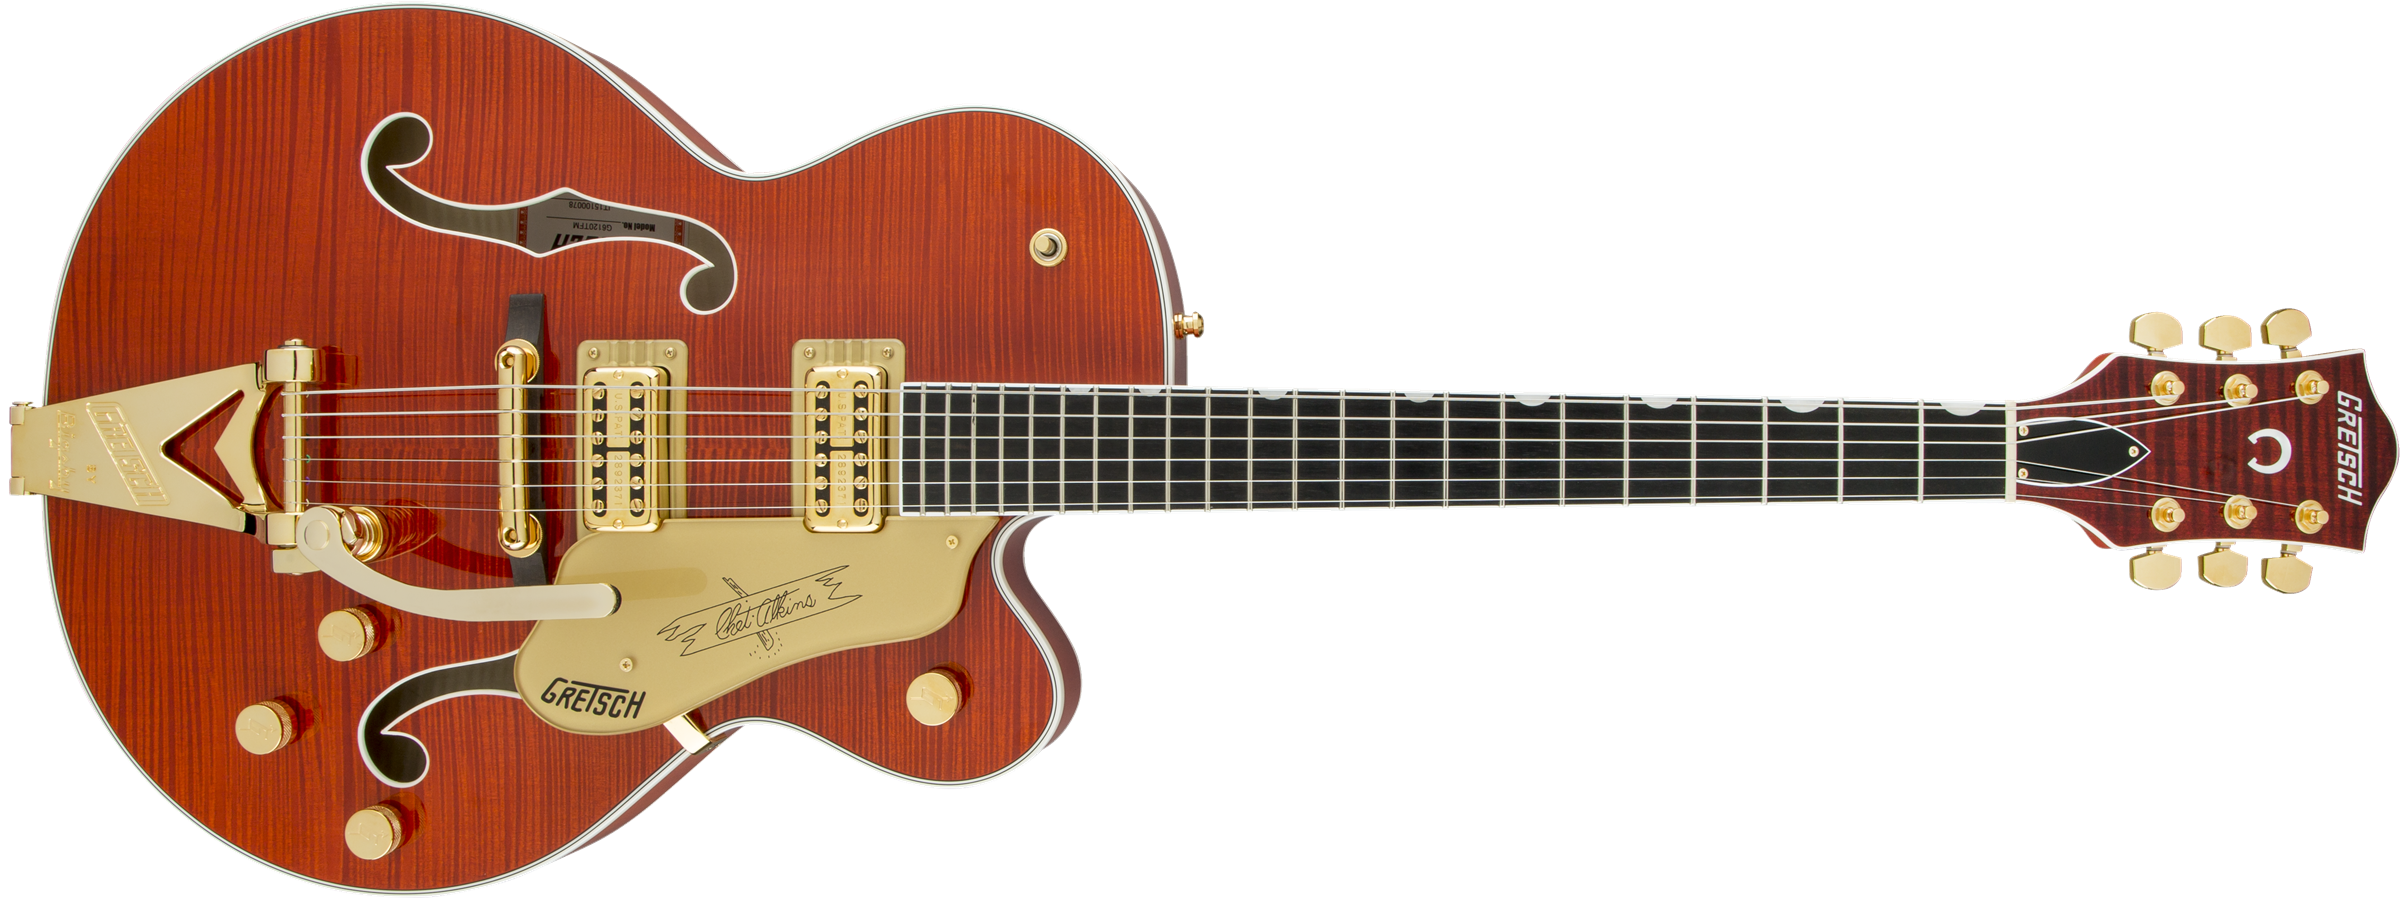 GRETSCH G6120TFM Players Edition Nashville with String-Thru Bigsby, FilterTron Pickups, Flame Maple, Orange Stain